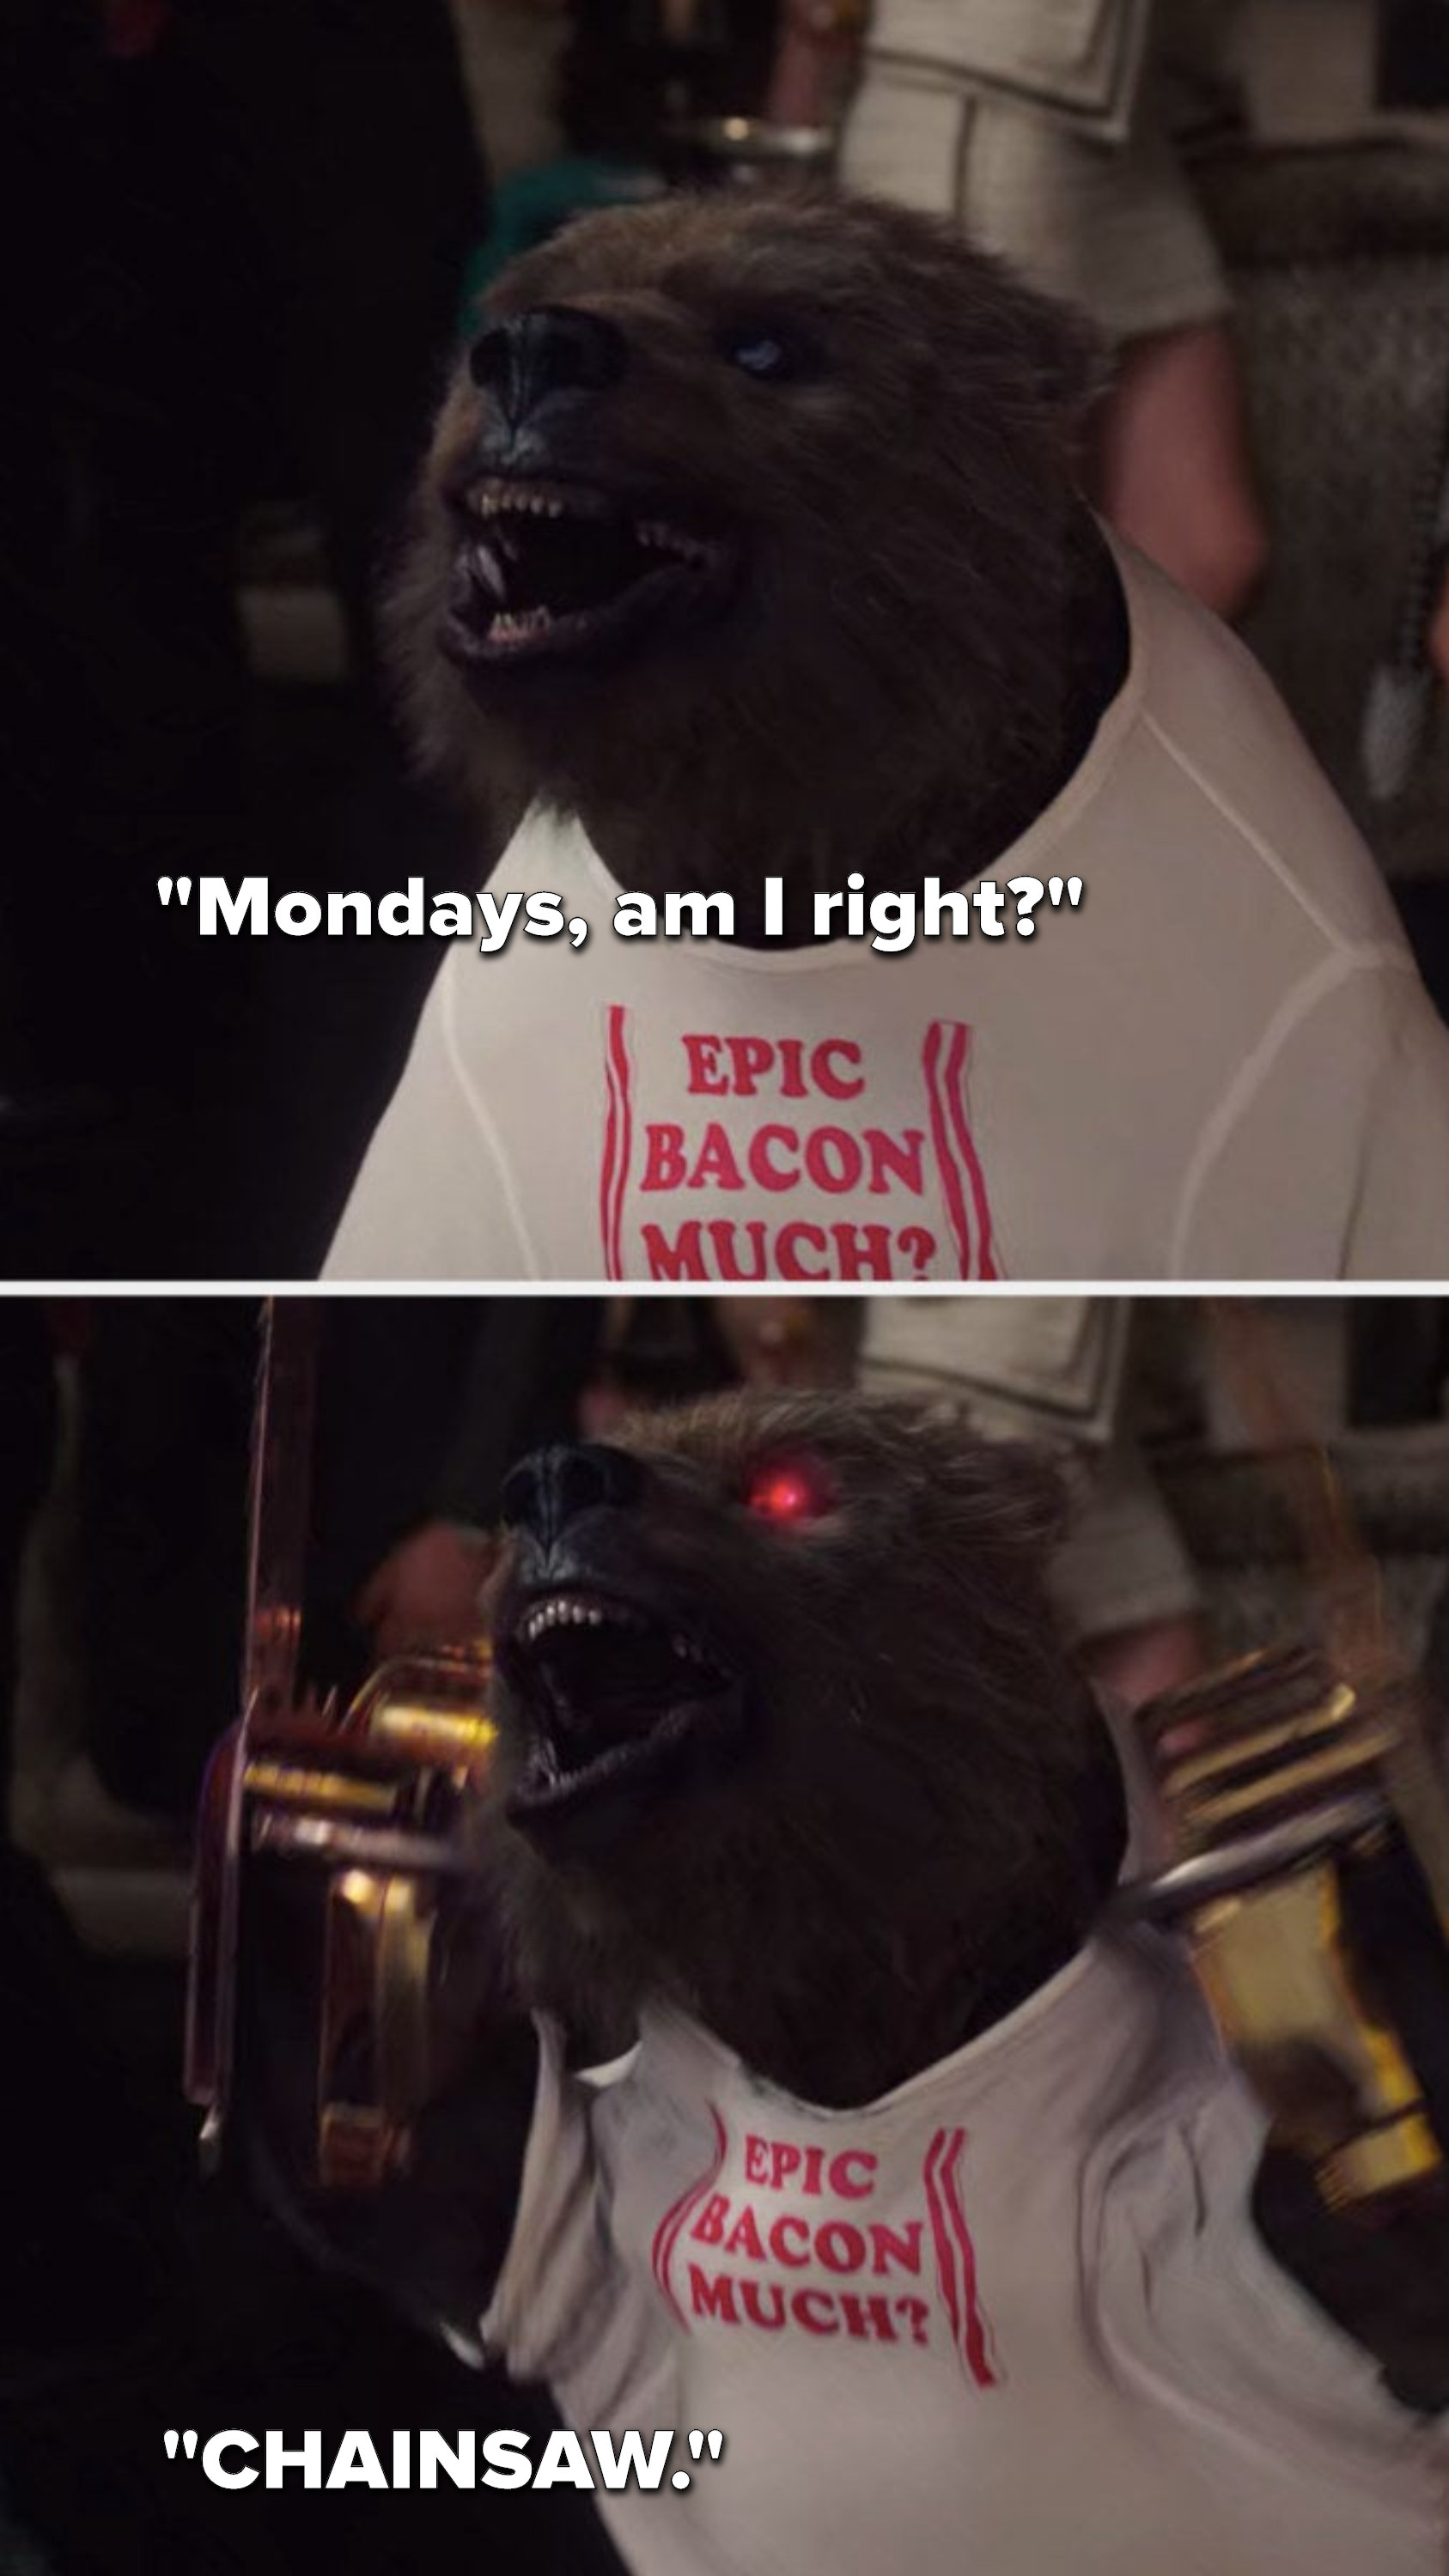 """A small bear wearing a shirt that says, """"Epic Bacon Much"""" says, """"Mondays, am I right,"""" then holds up chainsaws and says, """"CHAINSAW"""""""